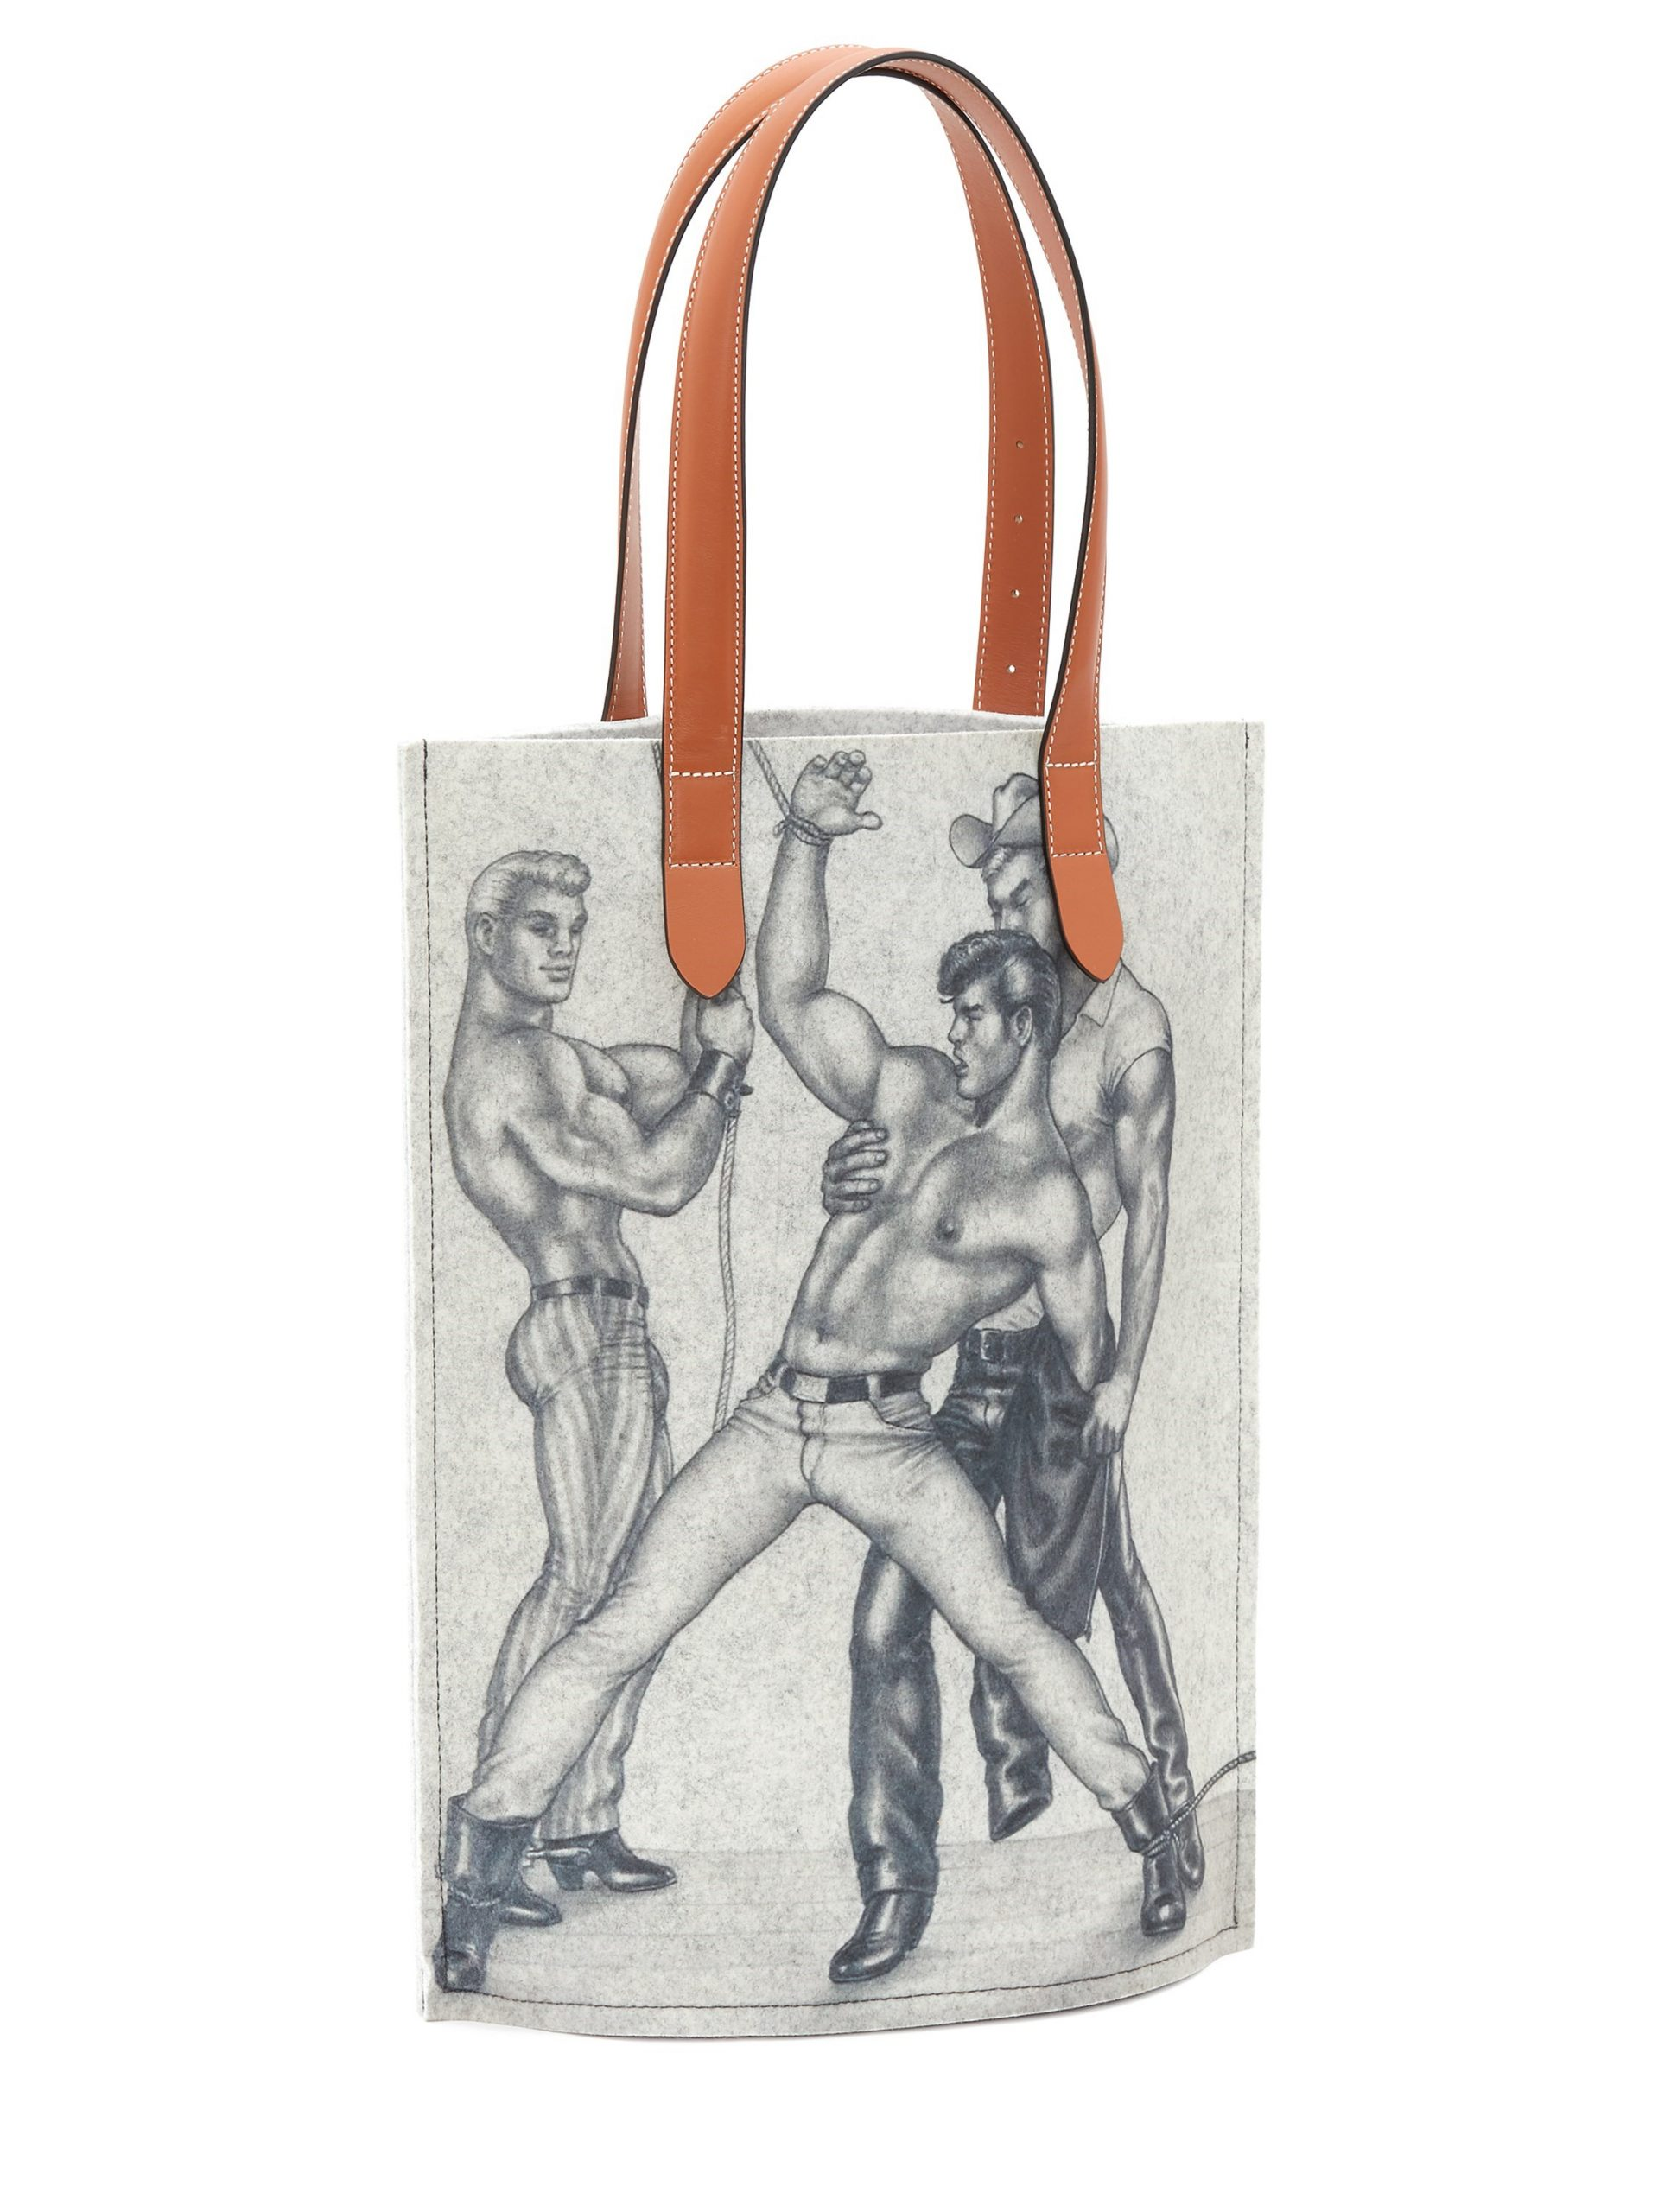 JW Anderson launches Tom of Finland x JW Anderson Capsule Collection